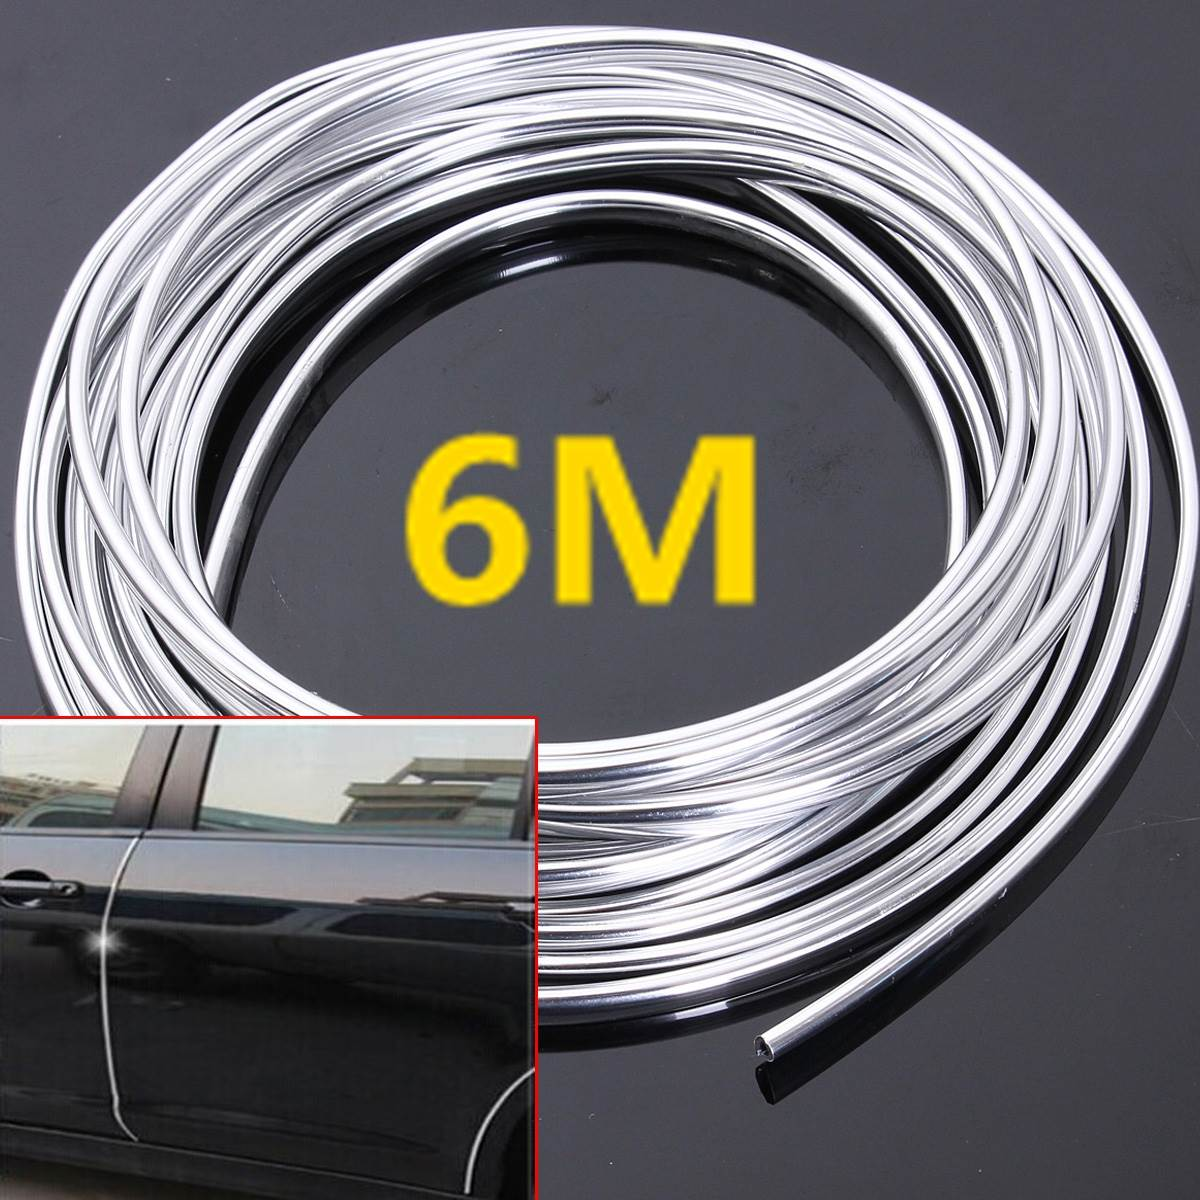 Partol 6mm 3meters Car Styling Chrome Mouldings Strip Bumper Sticker Pelindung Pintu Mobil Door Guard 6m Moulding Trim Edge Scratch Protector Cover Roll